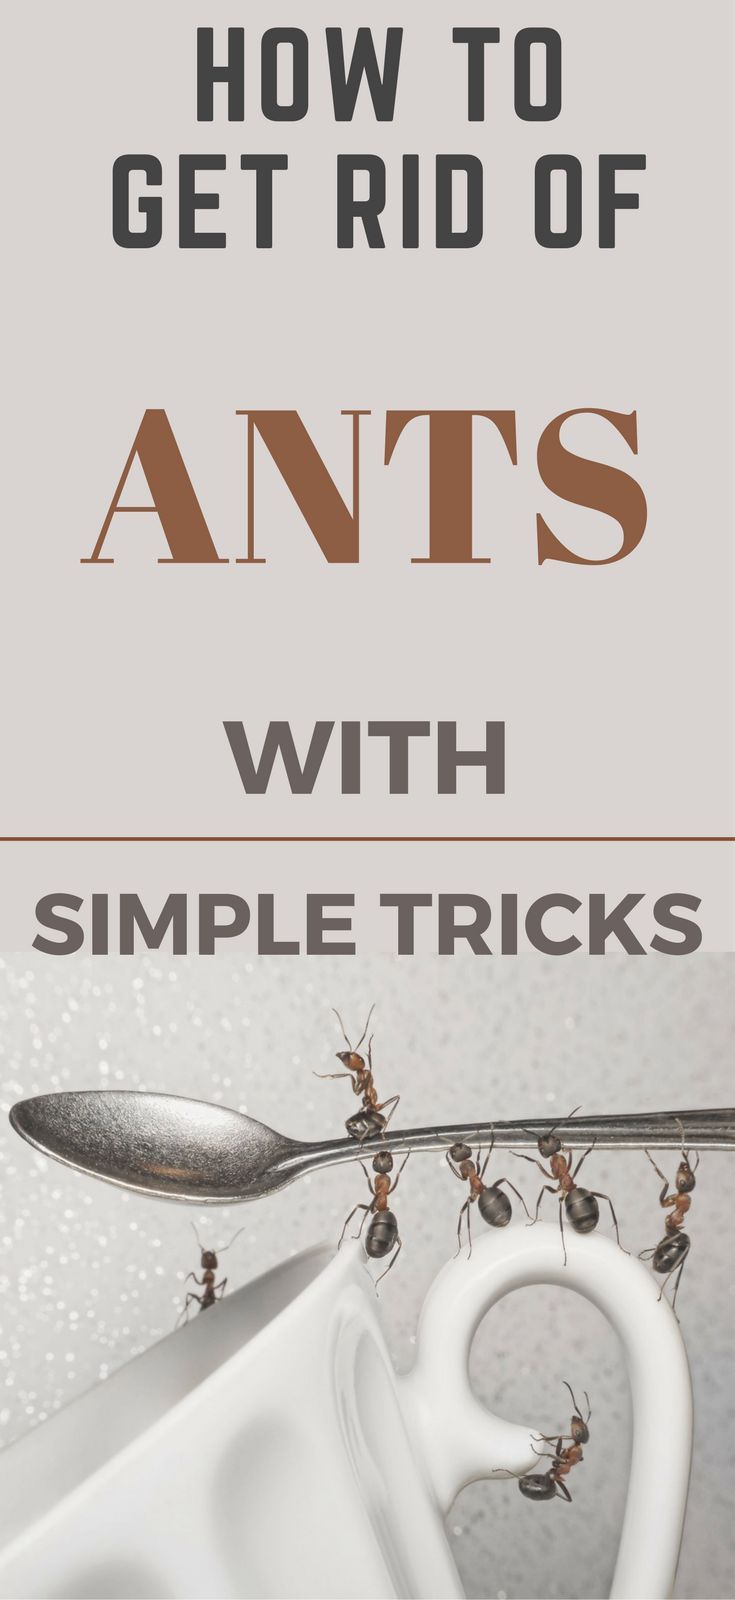 How to Get Rid of Ants In The Kitchen With Simple Tricks | Ant ...